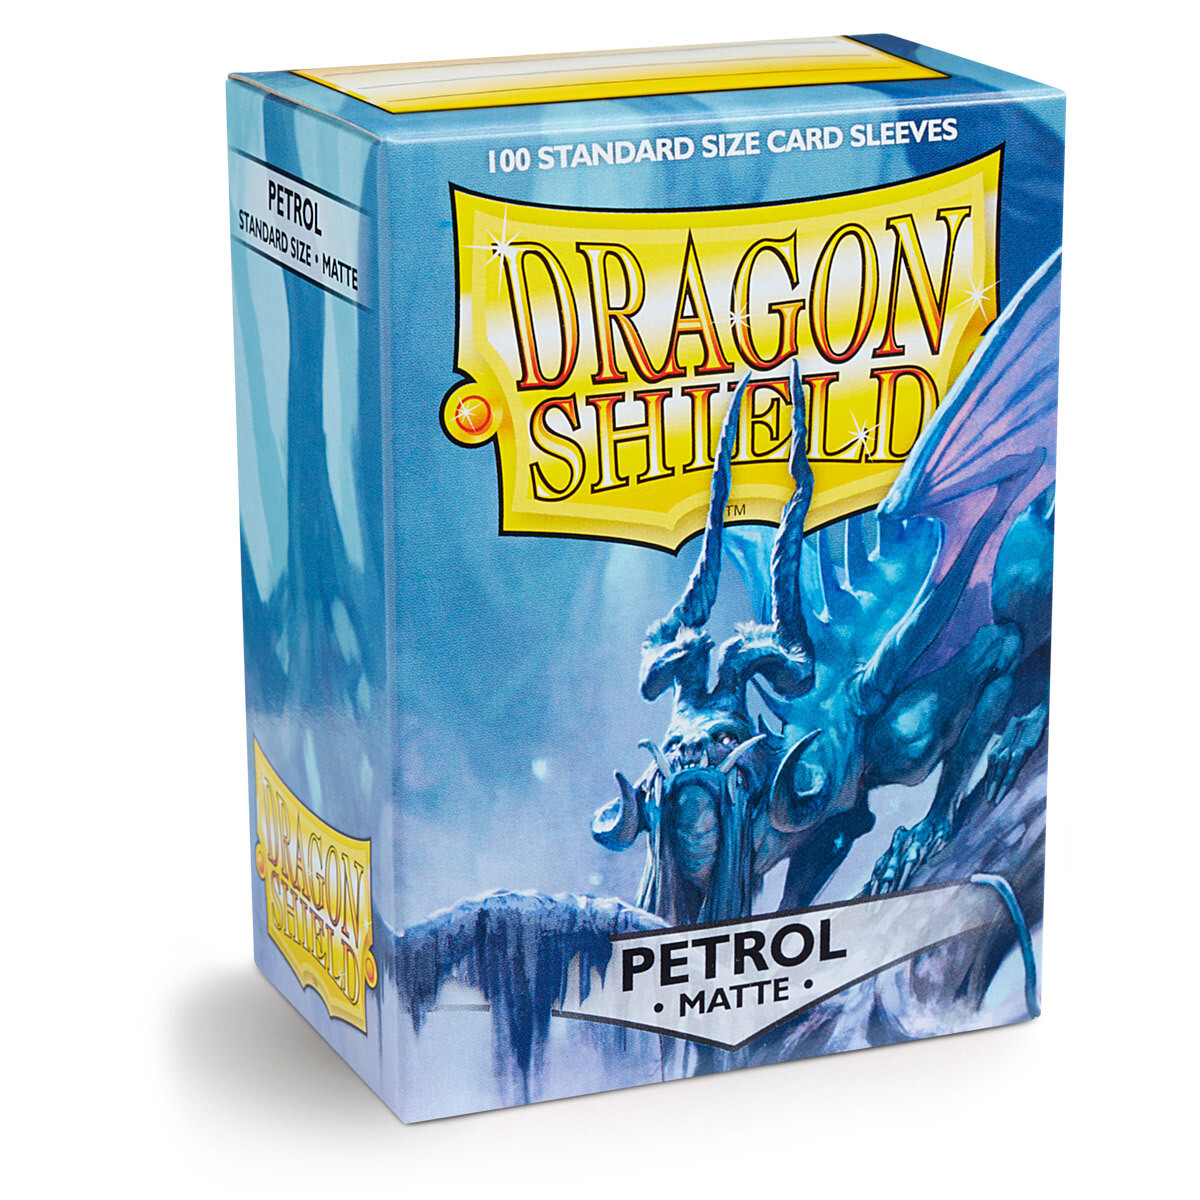 Dragon Shield 100 Sleeves - Matte Petrol